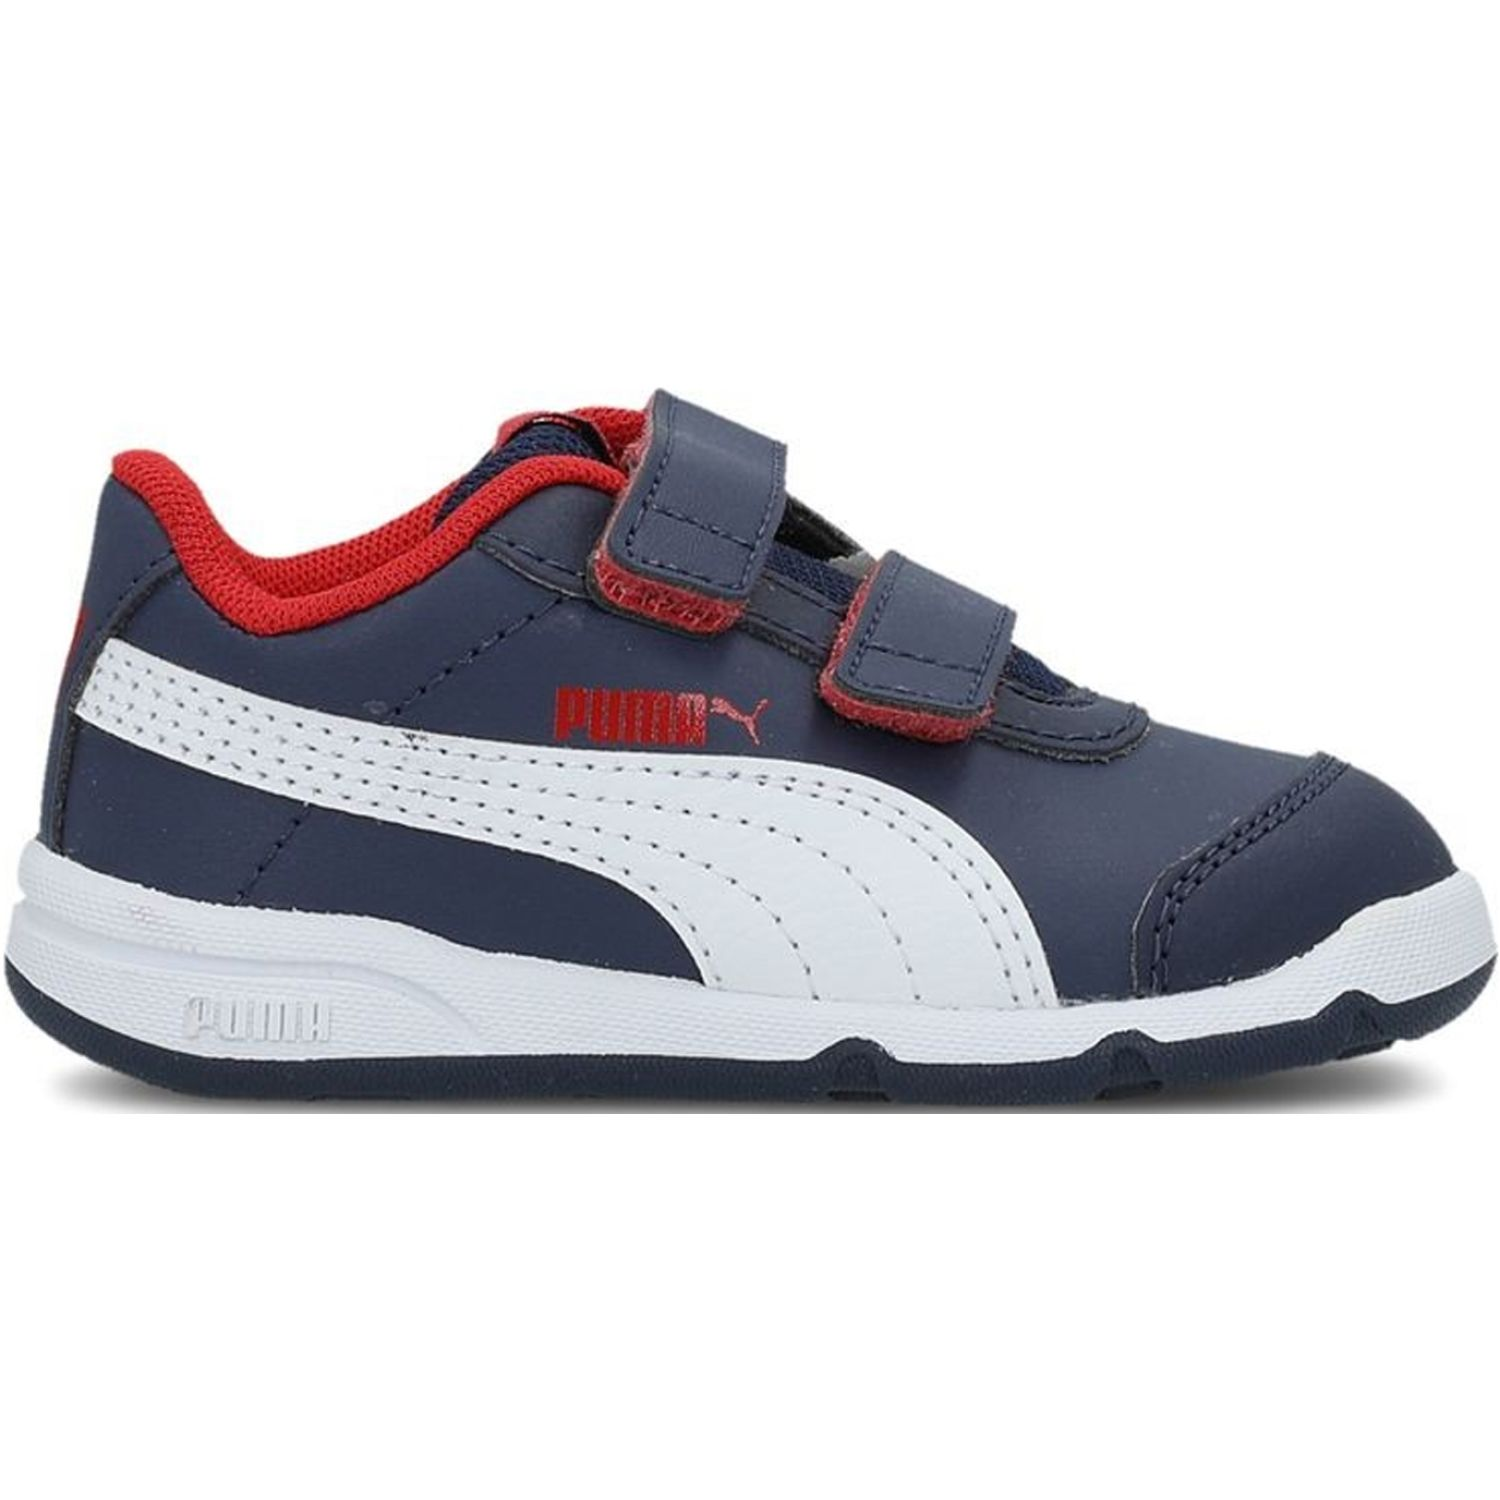 Puma stepfleex 2 sl ve v inf Azul Walking